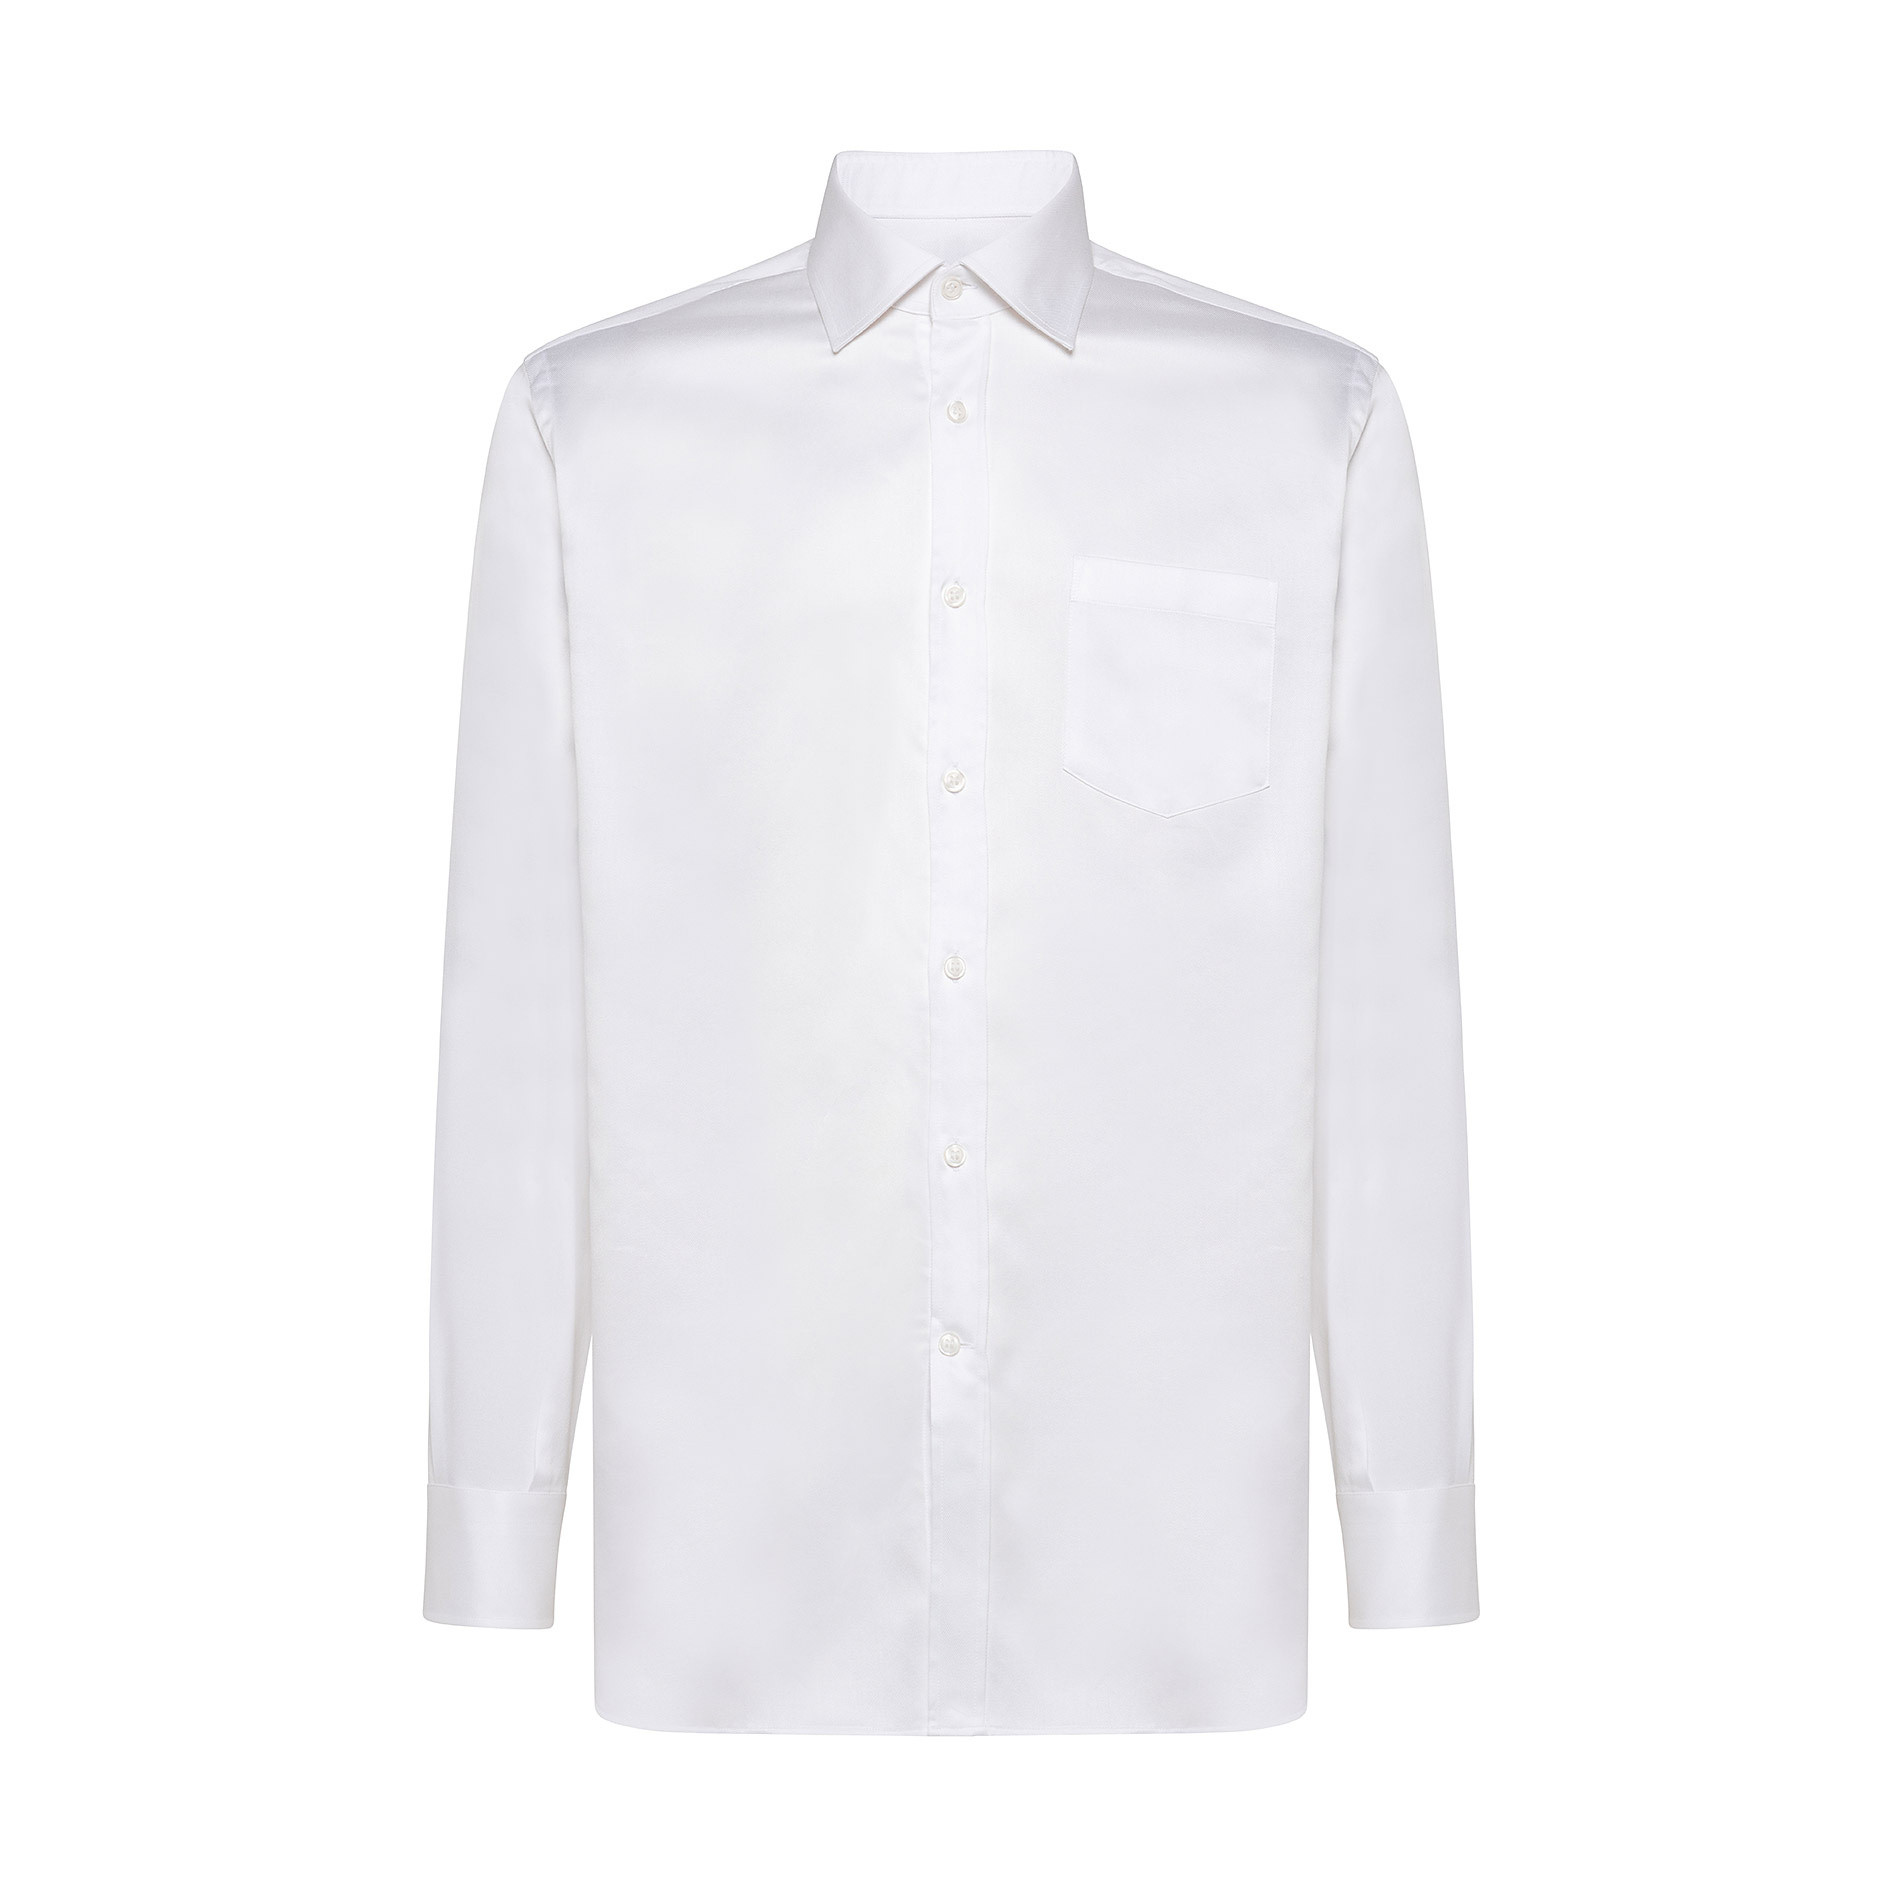 Camicia colletto francese in cotone, Bianco, large image number 0